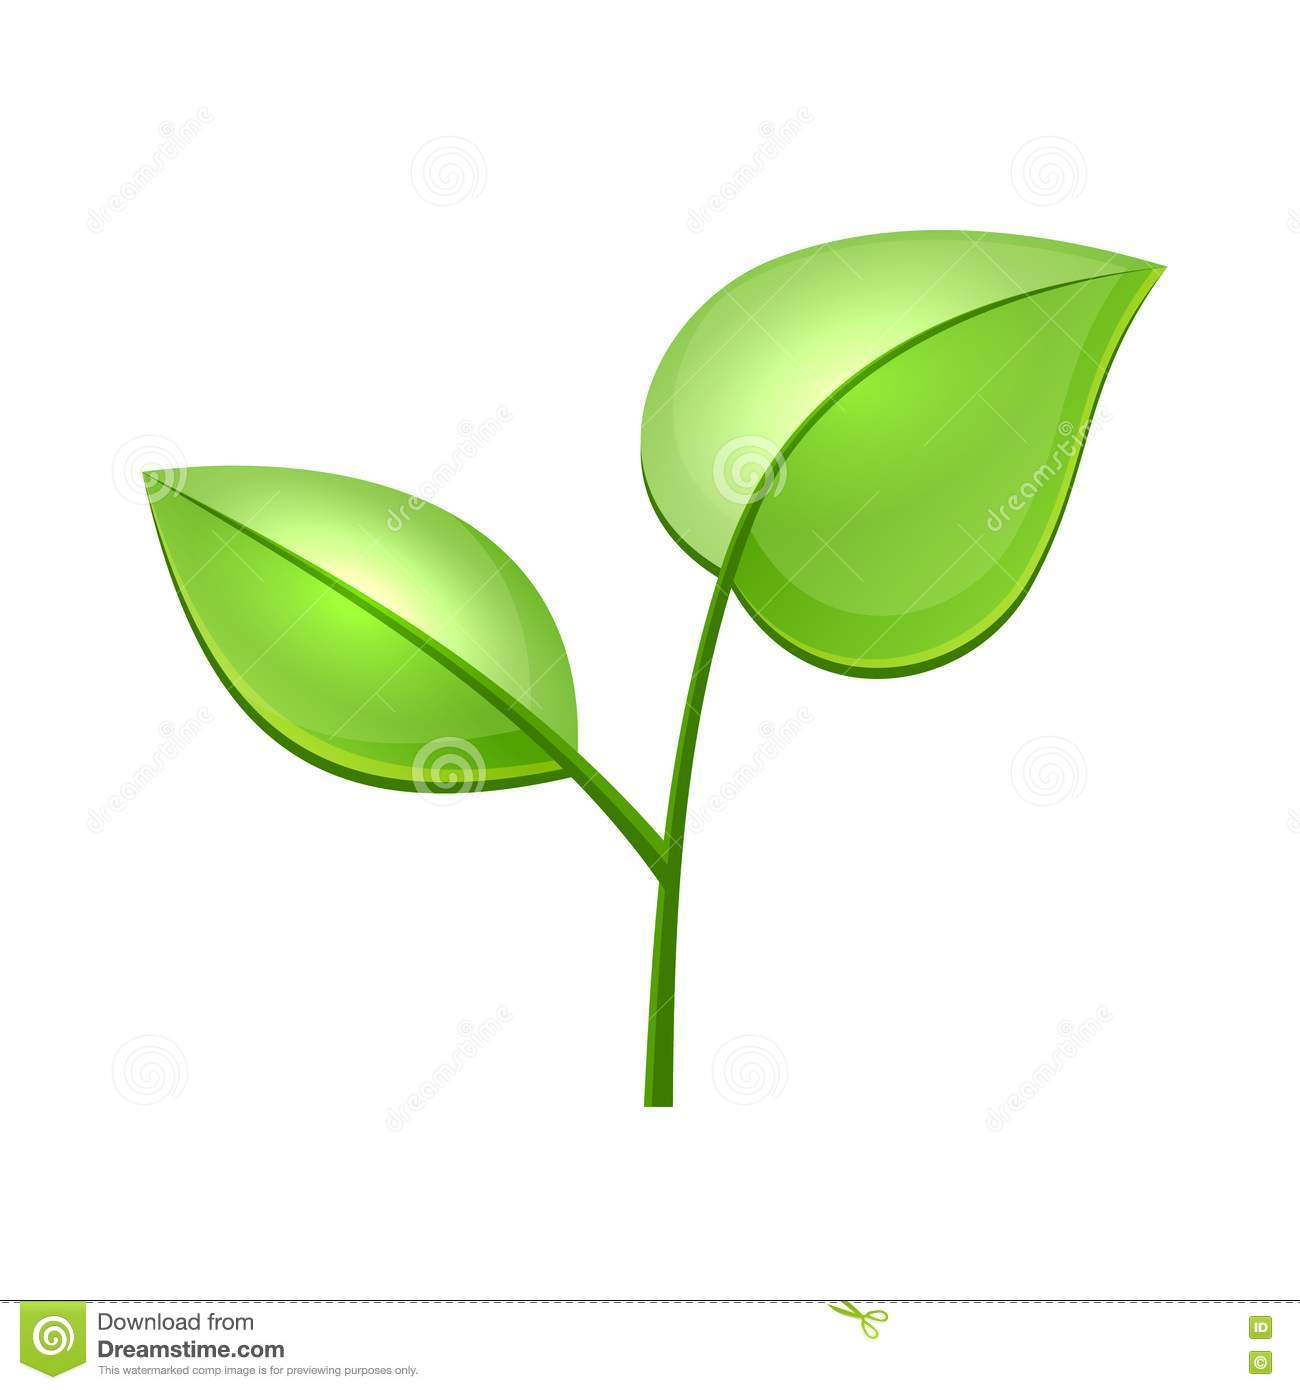 ... Leaf Vector Ecology concept icon with glossy green leaves vector stock